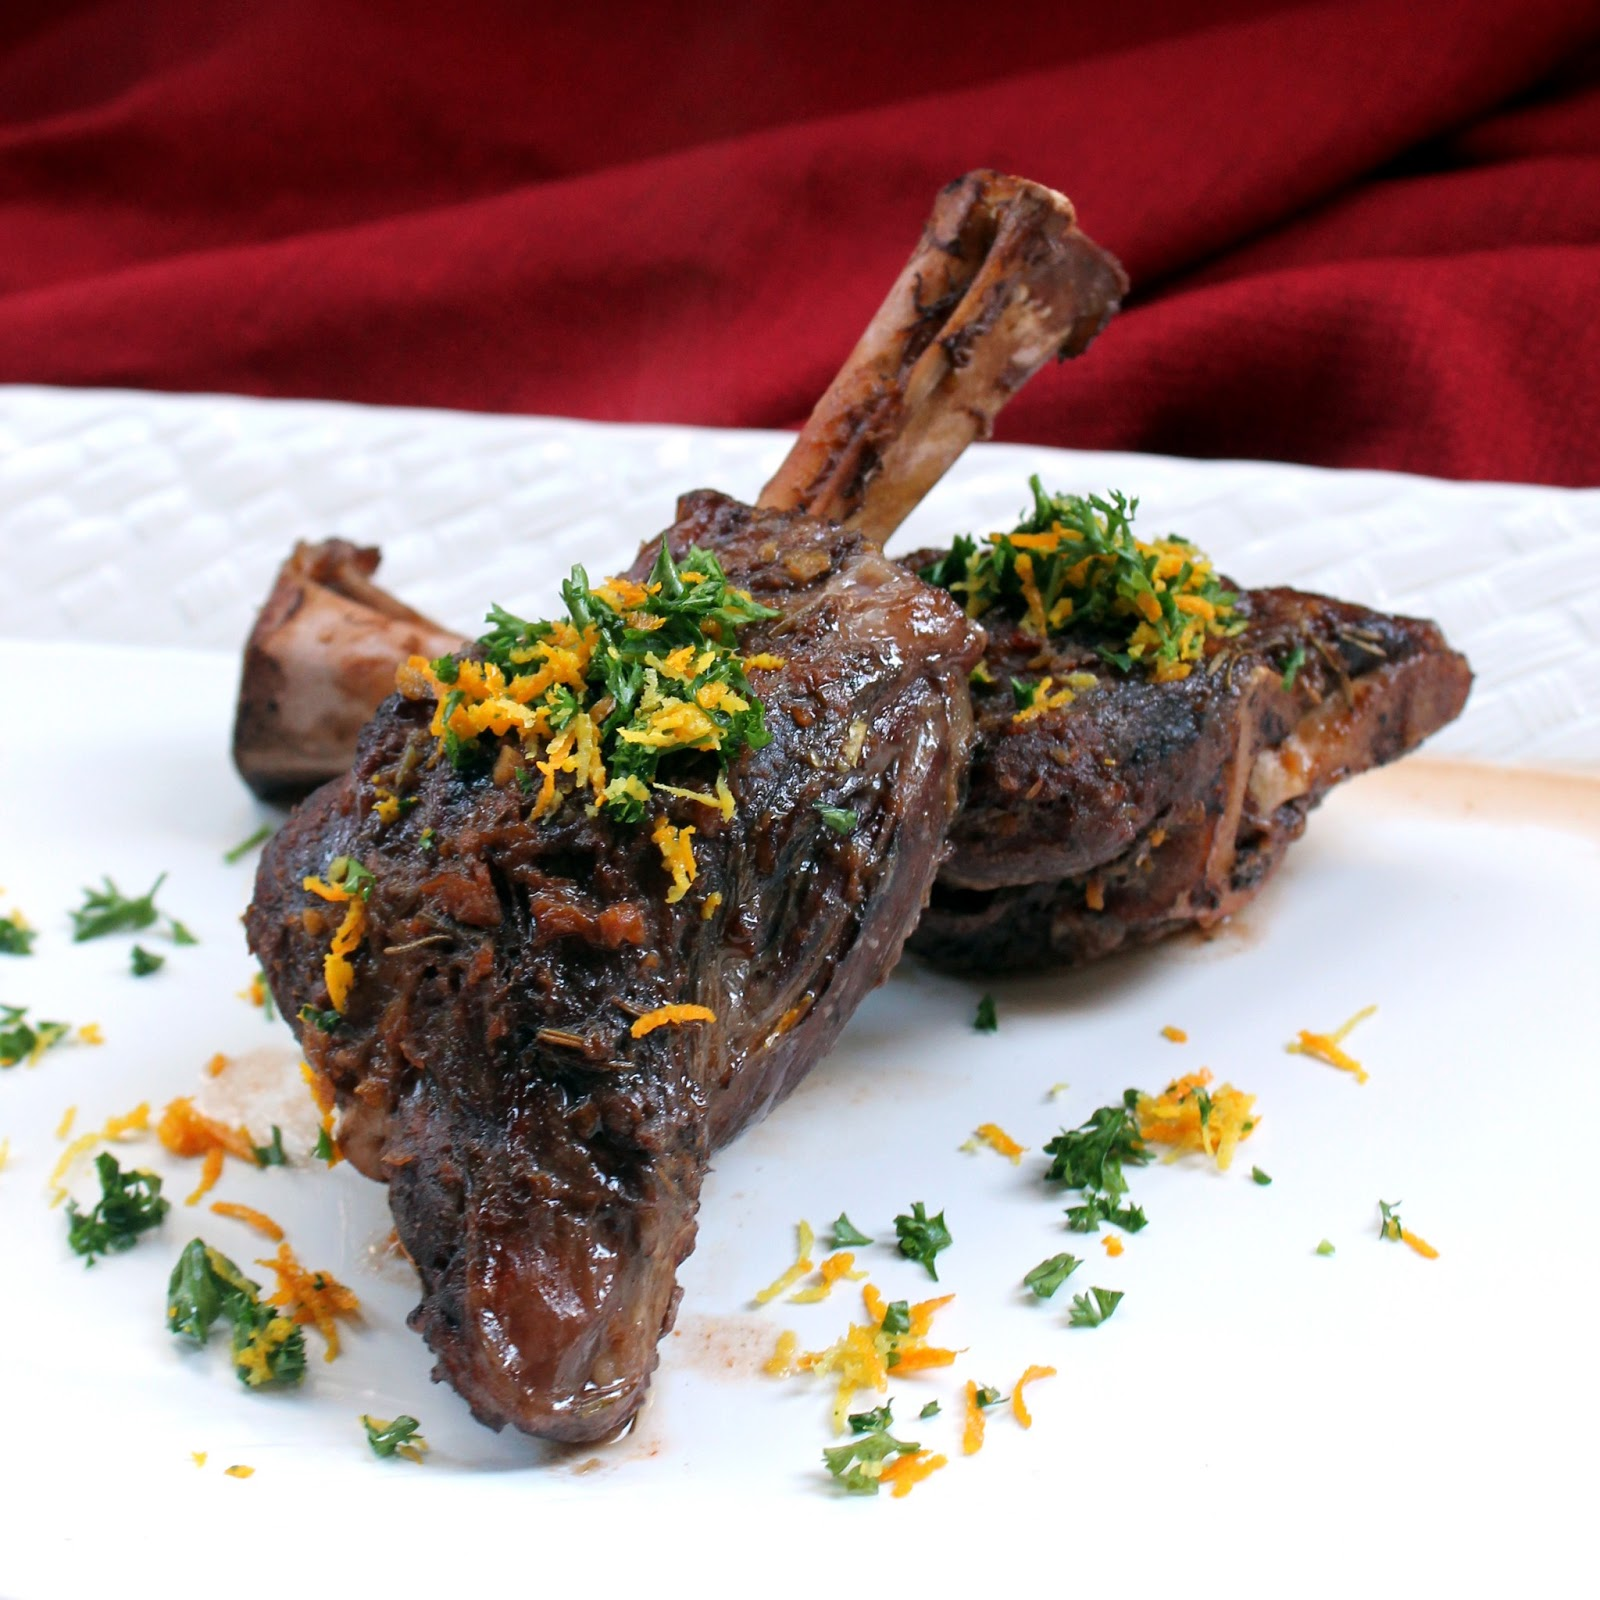 braised lamb braised lamb shanks with mint parsley pesto braised lamb ...